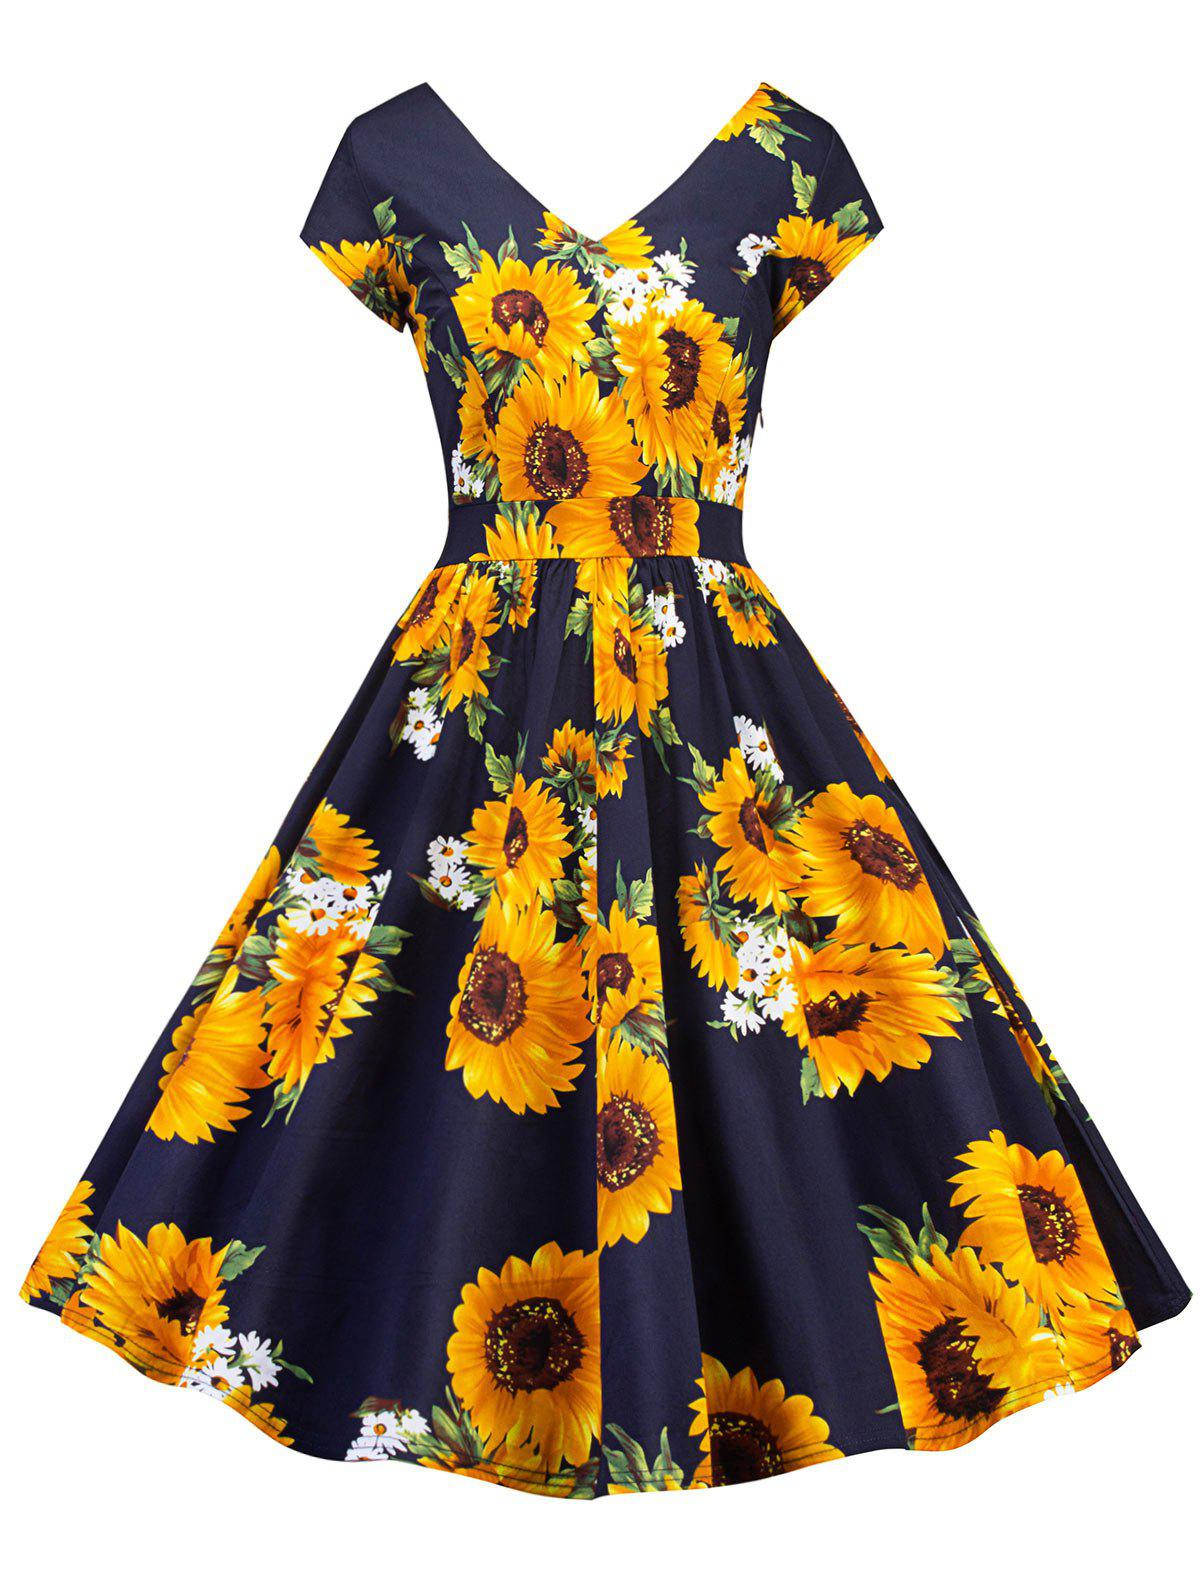 Retro Sunflower Print Pin Up Skater Dress retro butterfly pattern skater dress